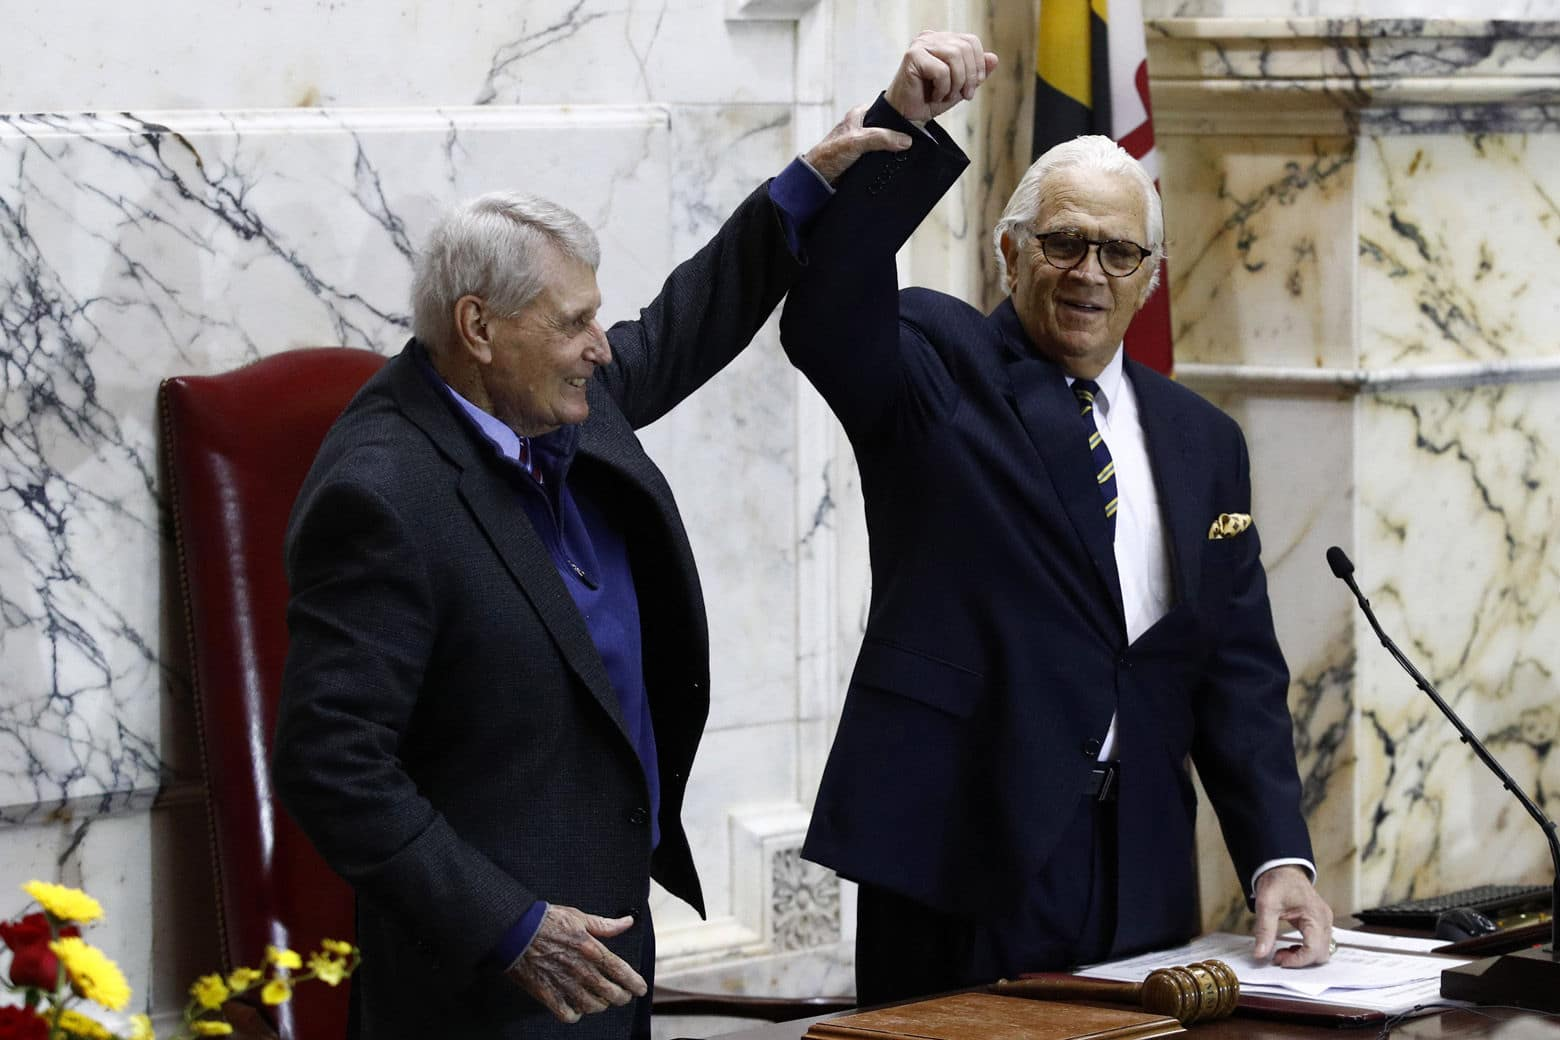 Maryland House Speaker Michael Busch, left, raises Senate President Thomas V. Mike Miller's arm before swearing-in ceremonies for Gov. Larry Hogan and Maryland Lt. Gov. Boyd Rutherford in the State Senate chamber, Wednesday, Jan. 16, 2019, in Annapolis, Md. (AP Photo/Patrick Semansky)